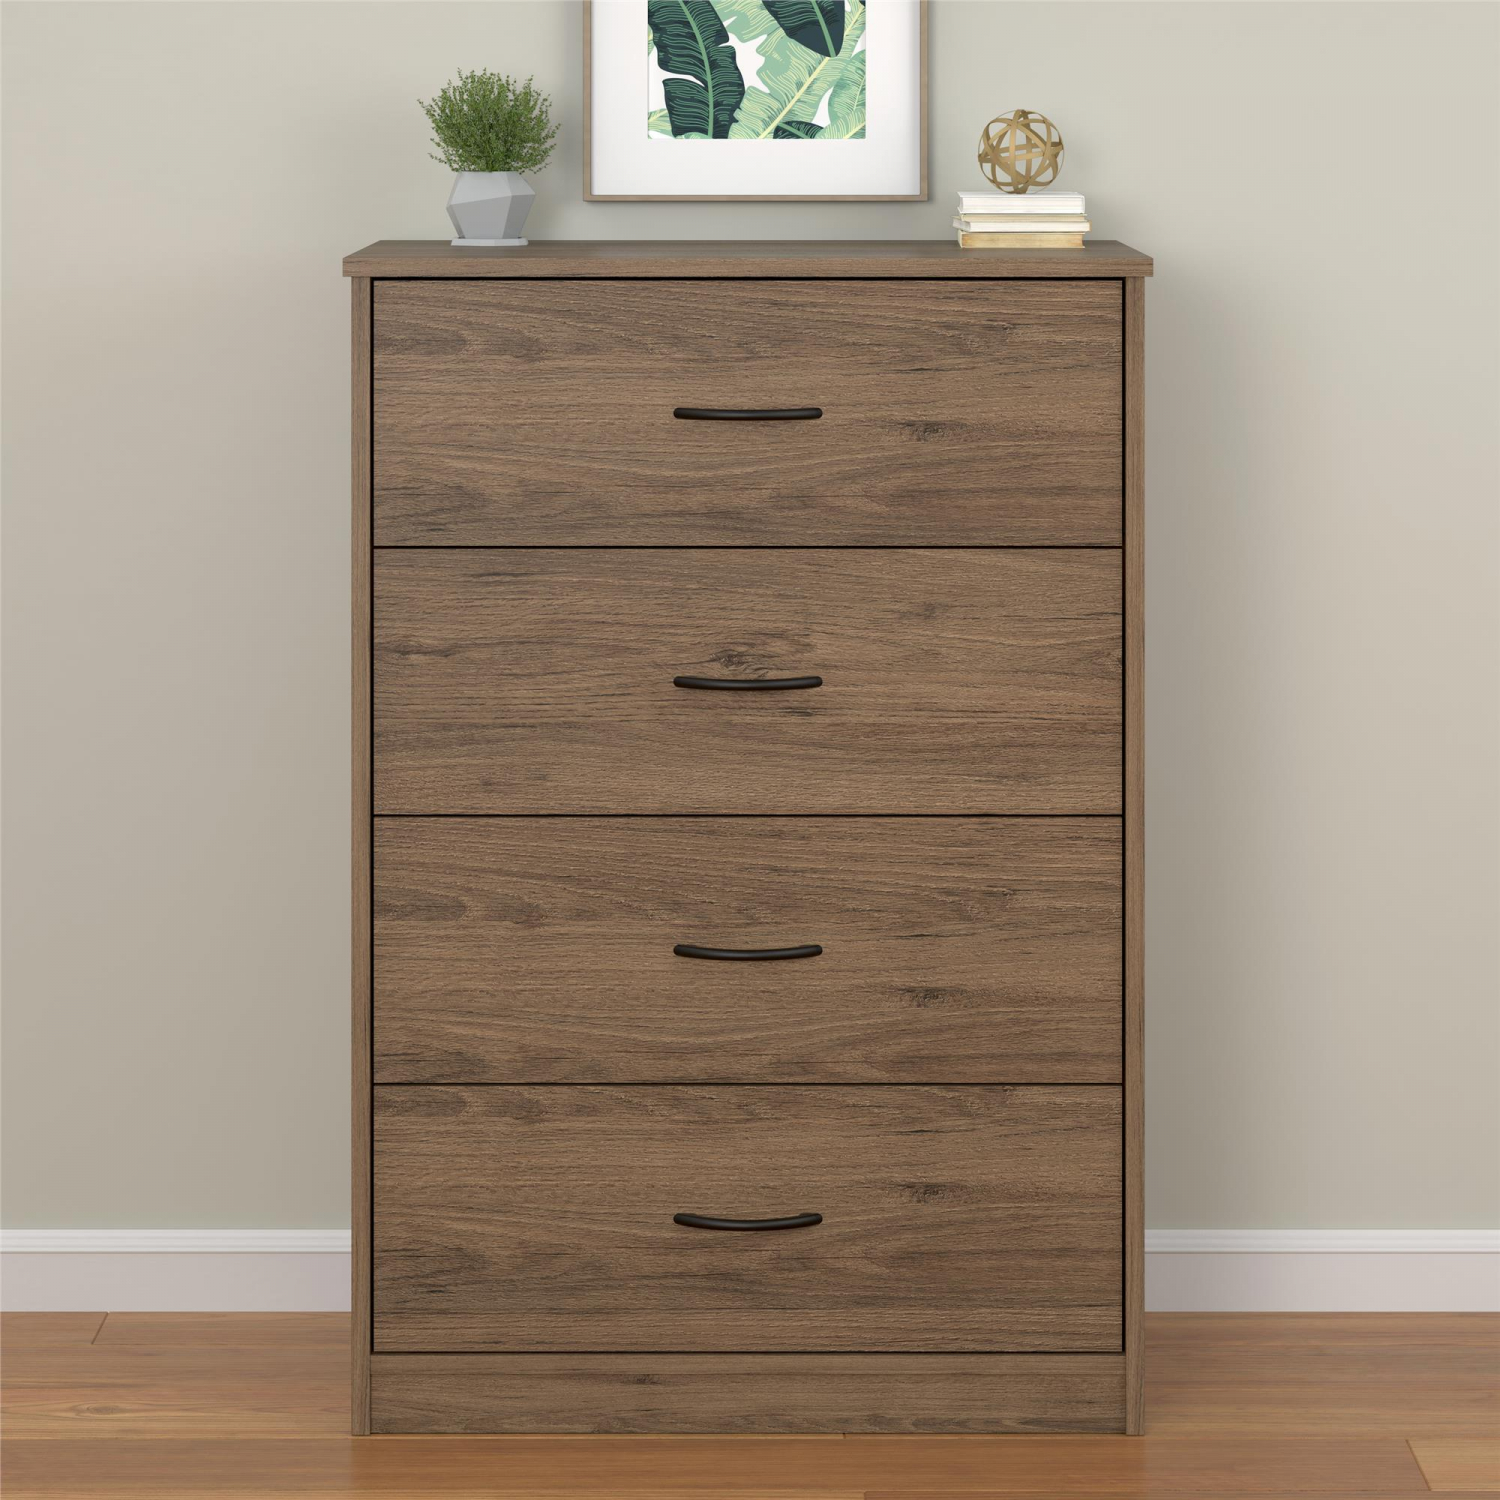 Details About 4 Drawer Dresser Chest Modern Bedroom Storage Wood Furniture 40 Tall 6 Colors